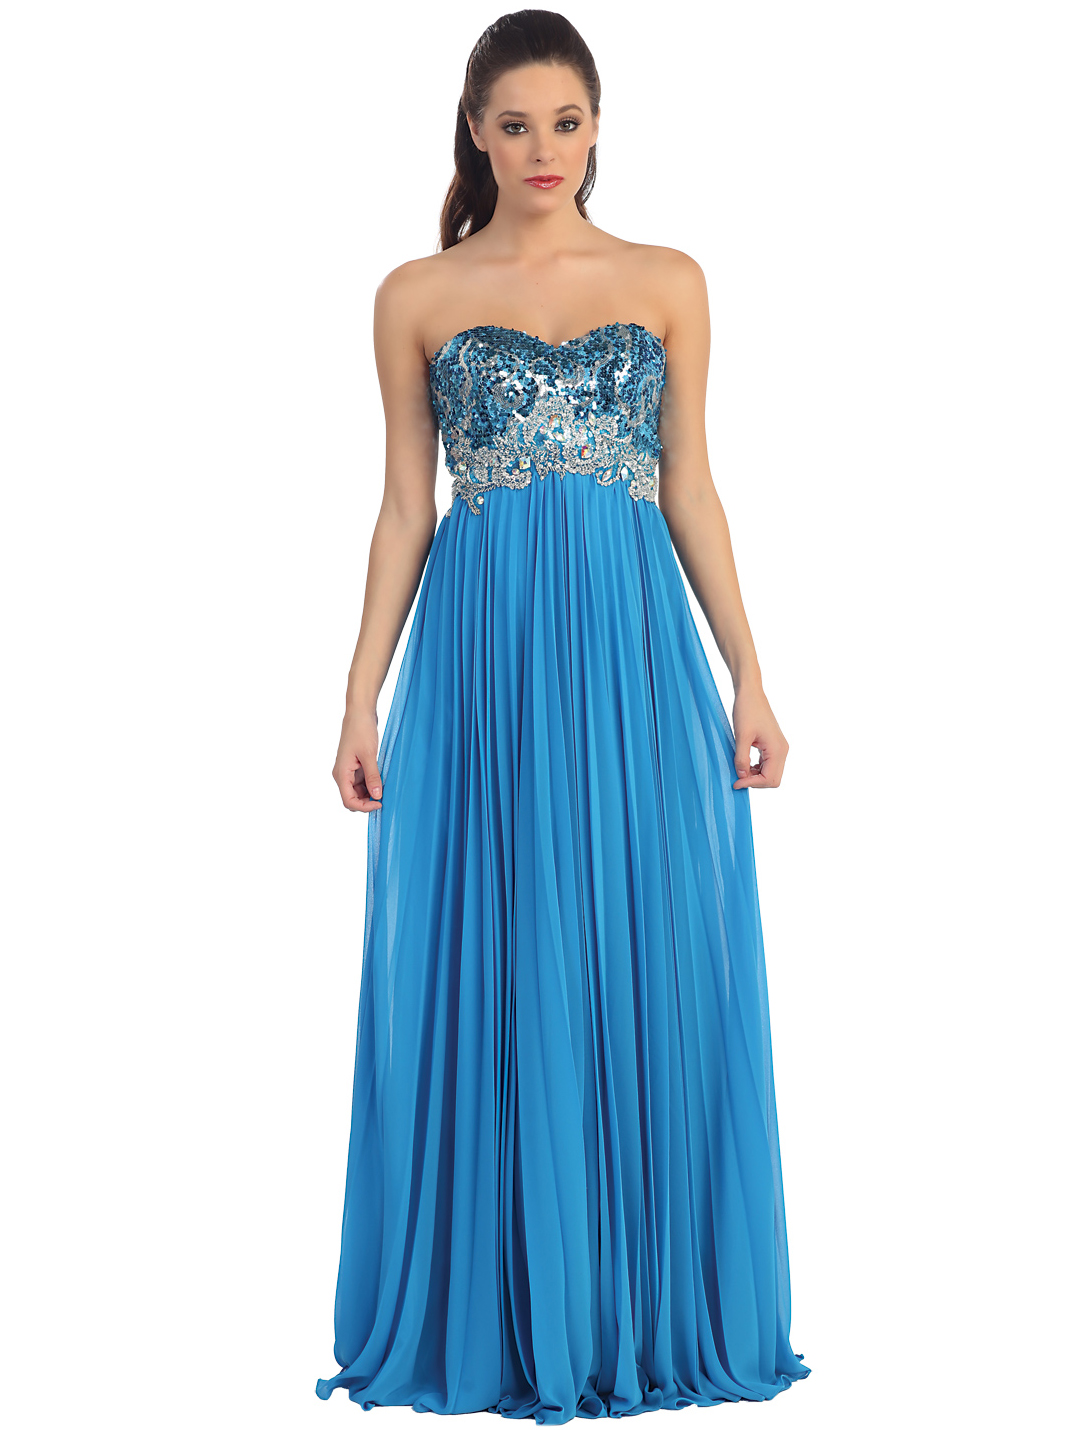 Strapless Sequin Pleated Long Prom Dress | Sung Boutique L.A.